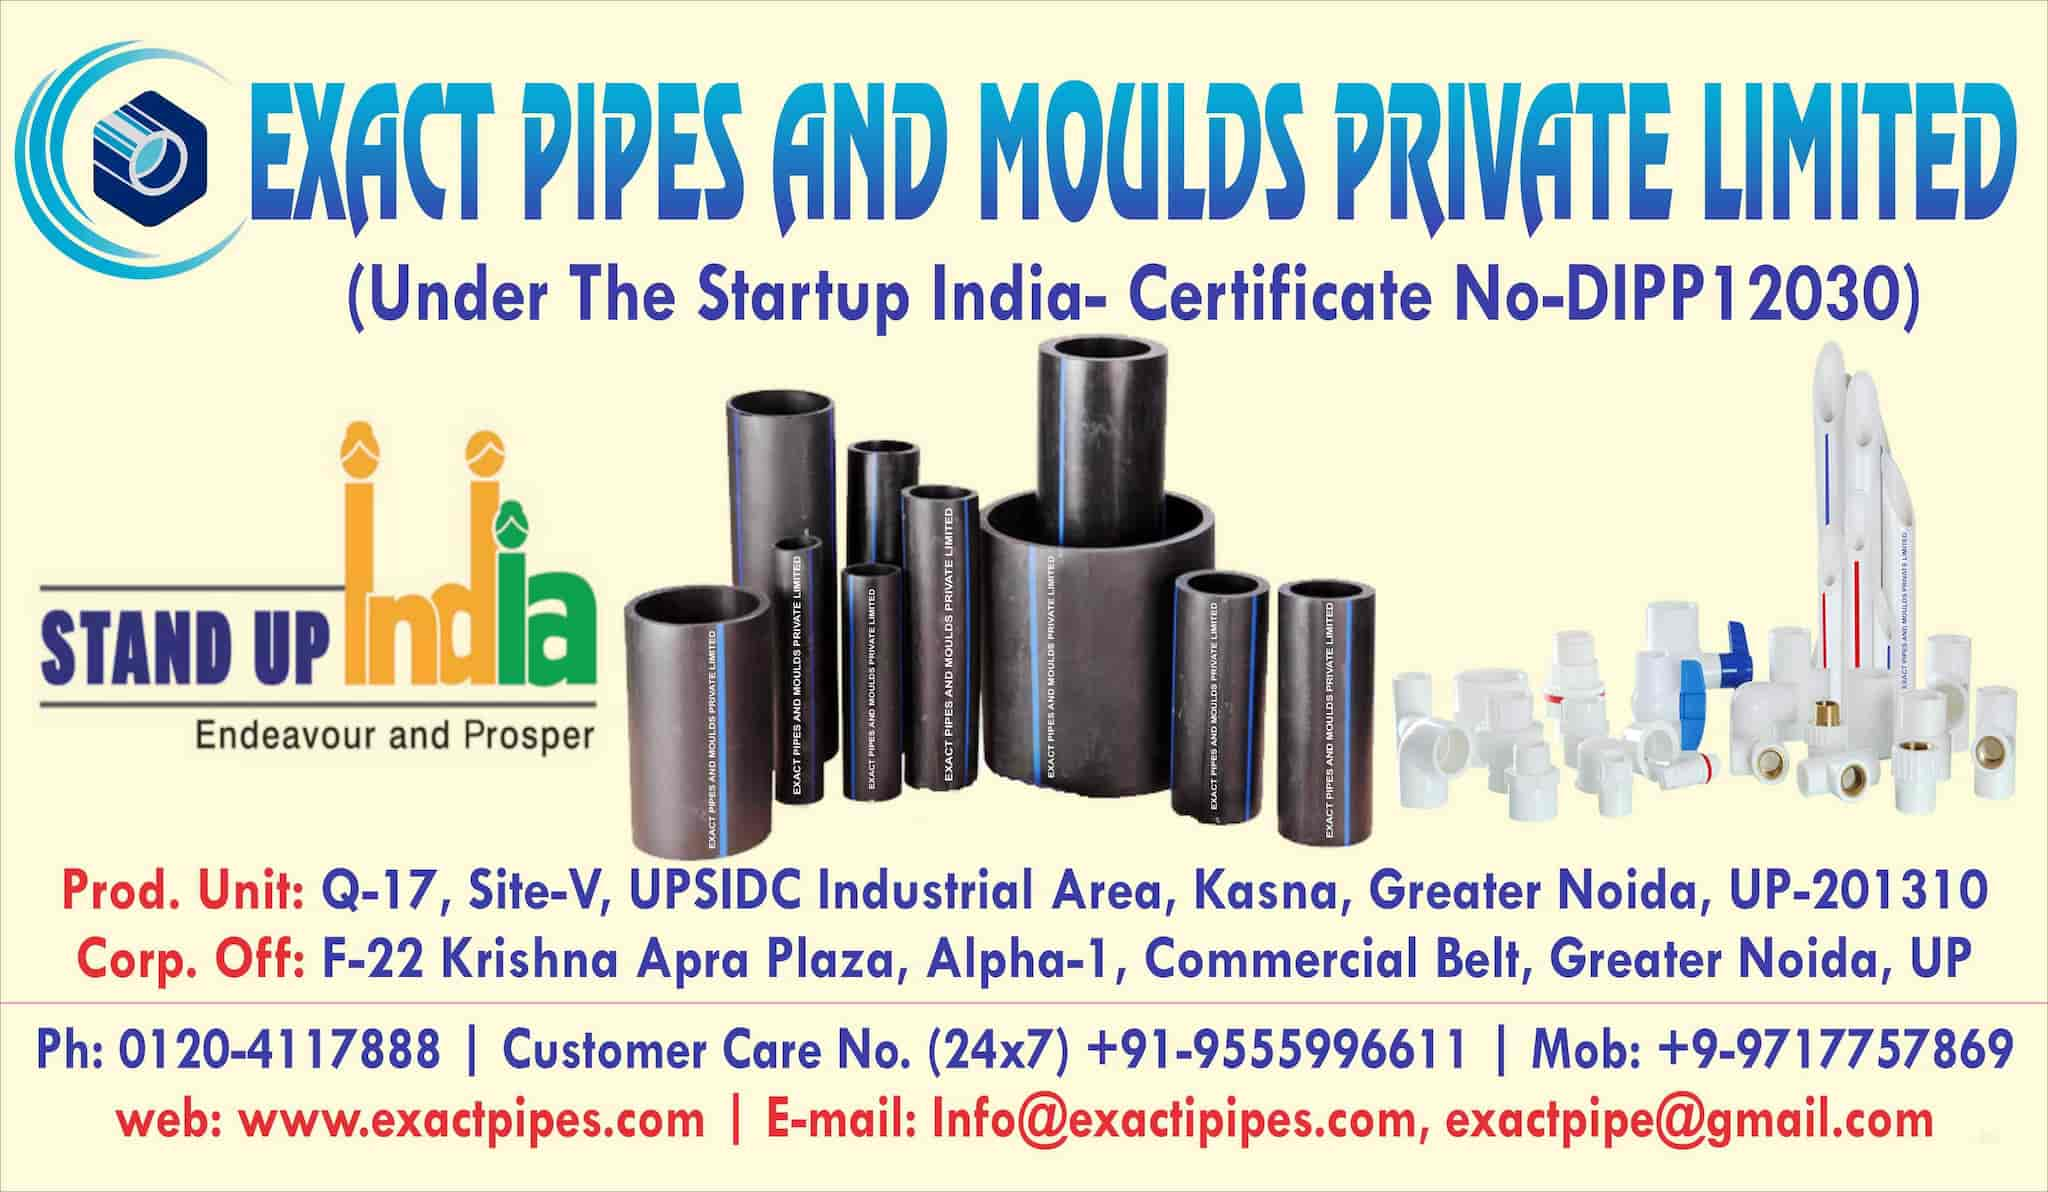 Exact Pipes And Moulds Pvt Ltd Photos, Greater, Noida